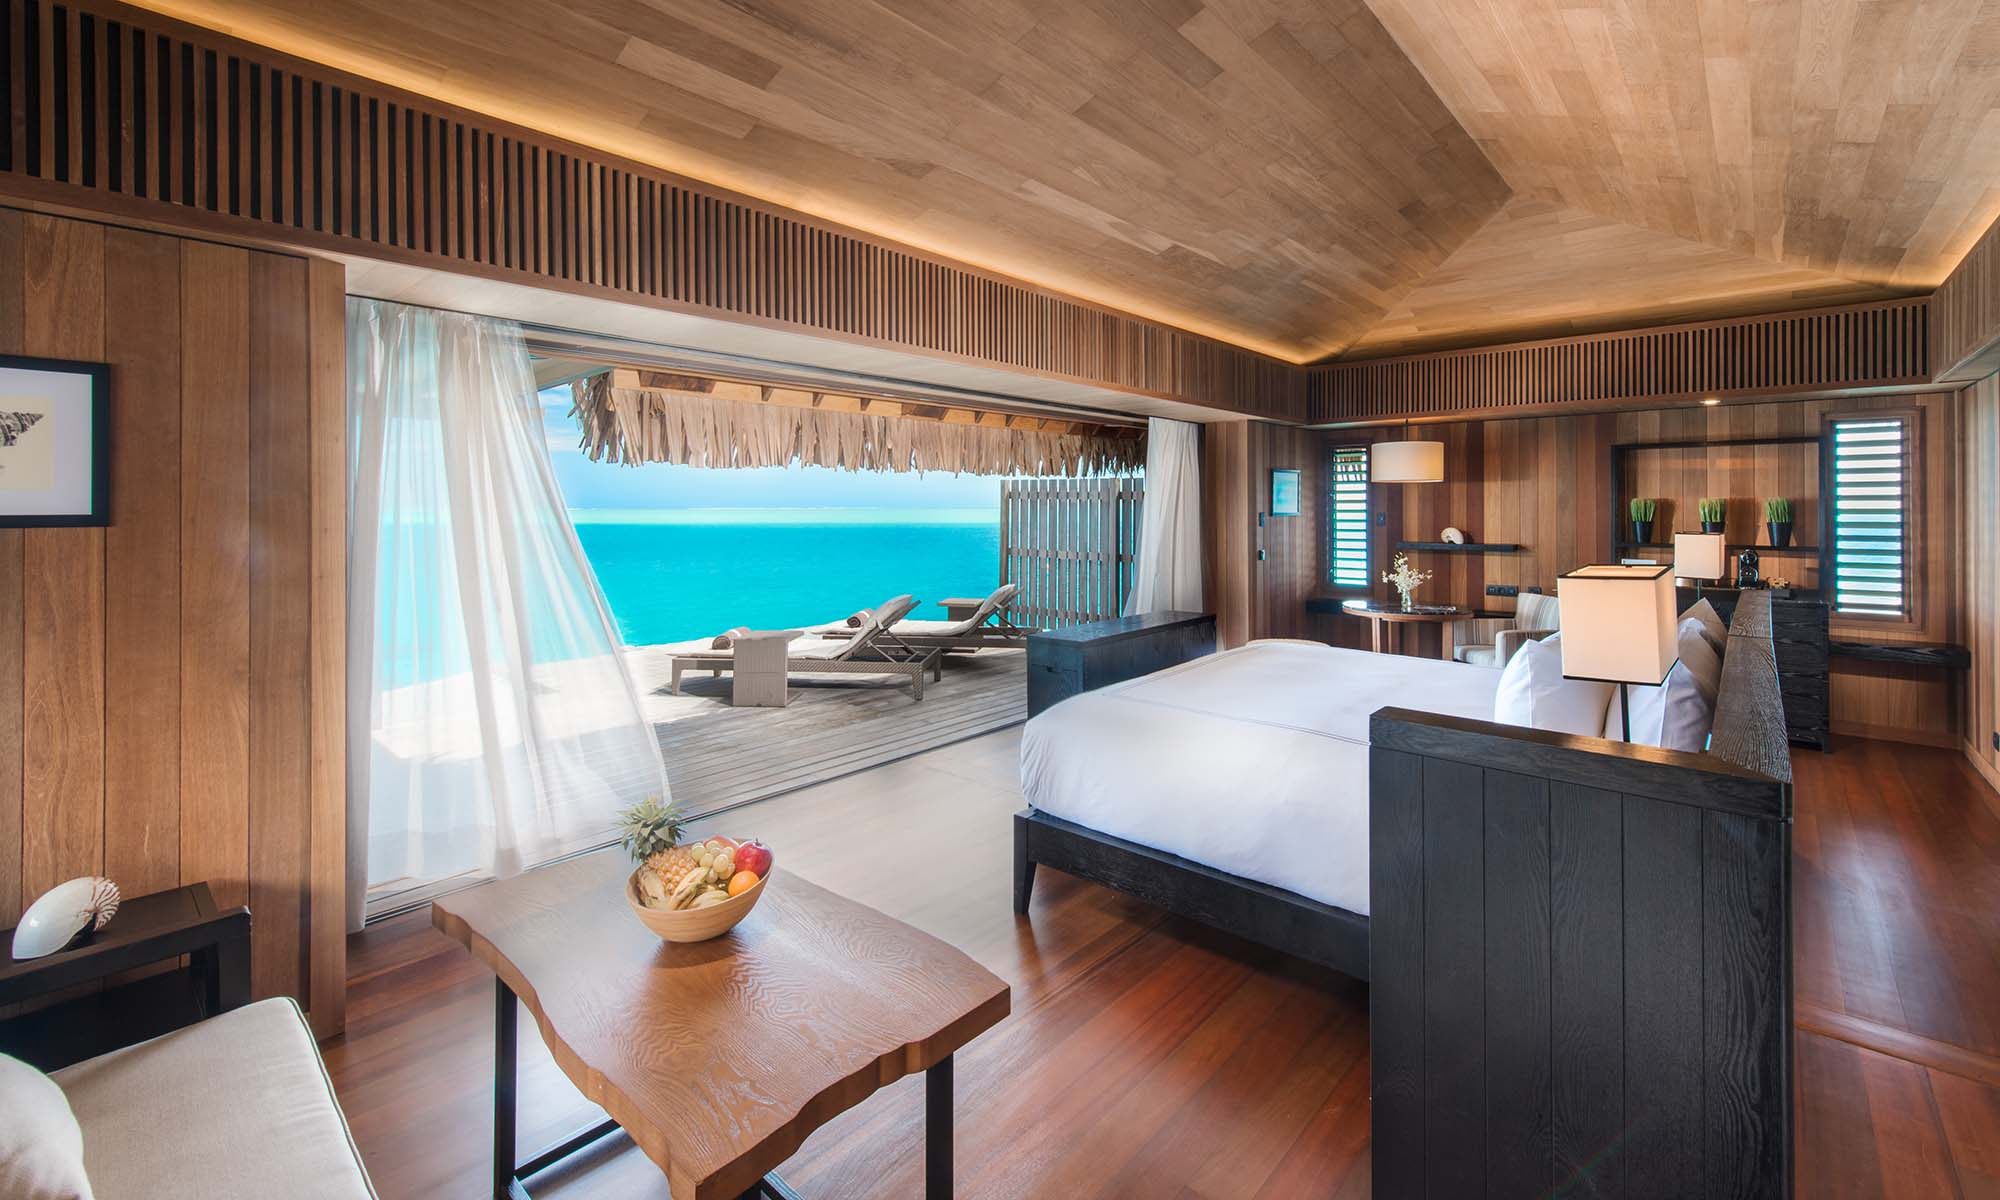 Interior of the Overwater Villa at the Conrad Bora Bora Nui